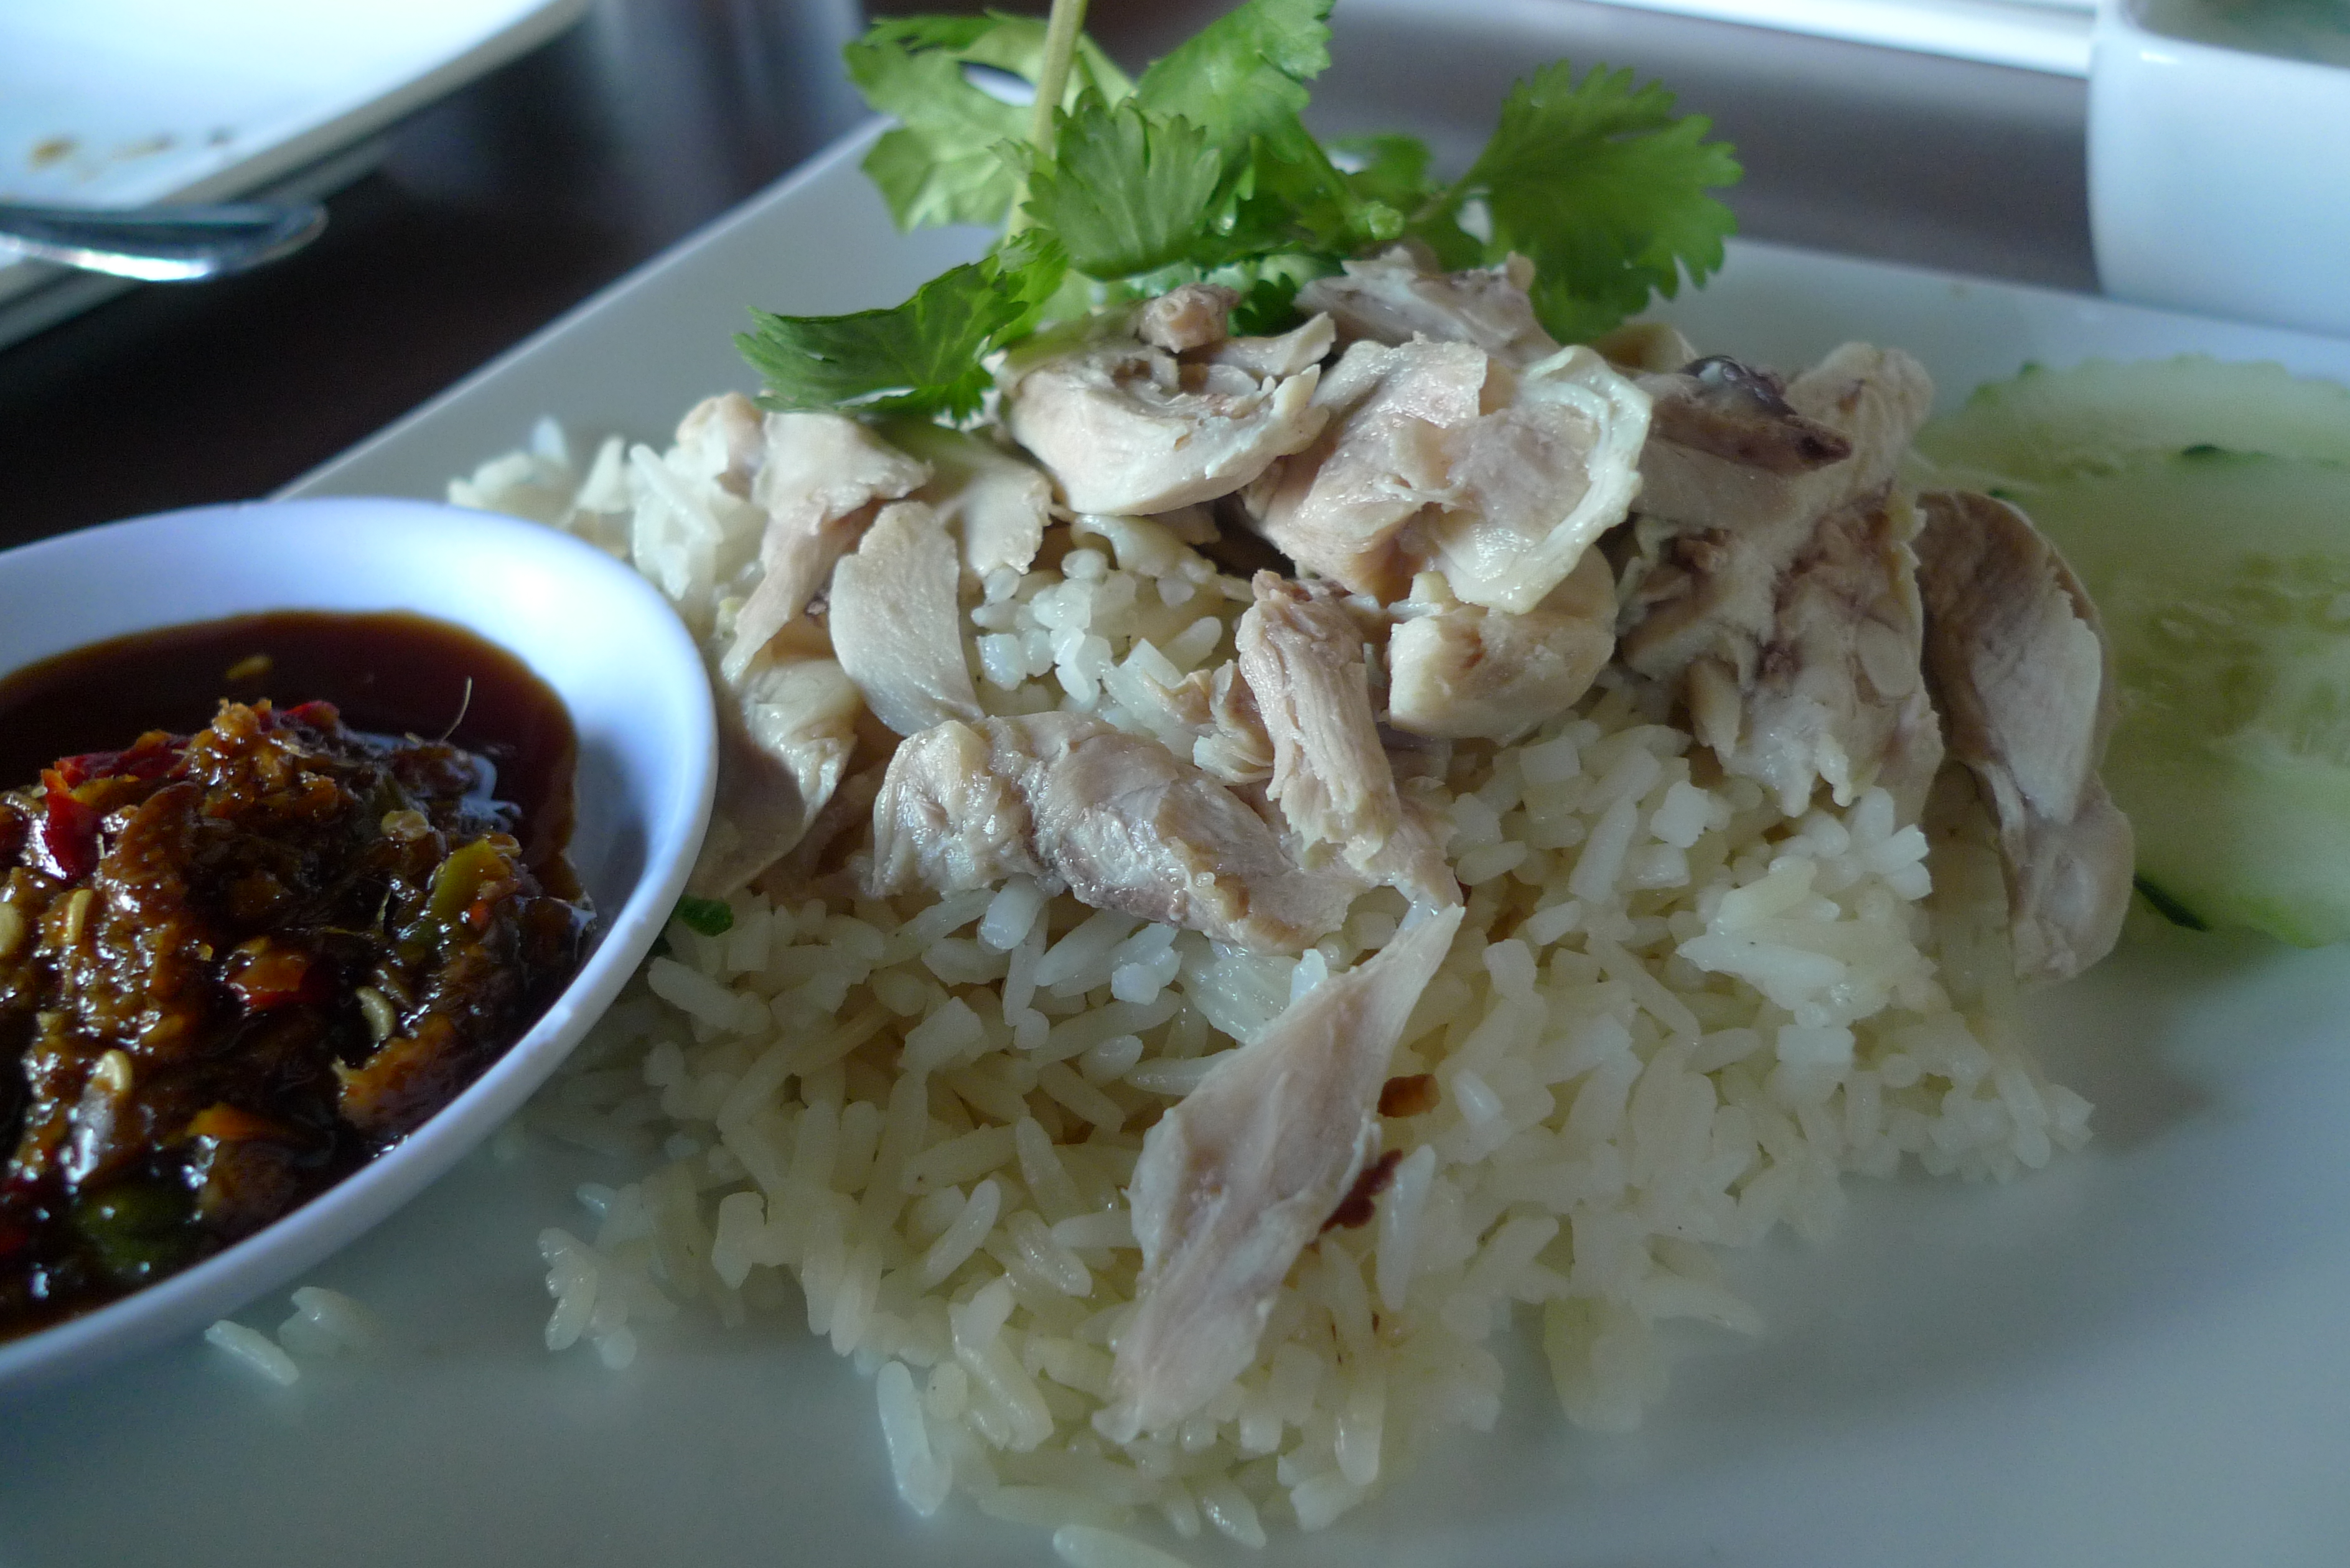 Delicious Destinations Singapore - Chicken rice topped with chopped chicken breast and a chili dipping sauce